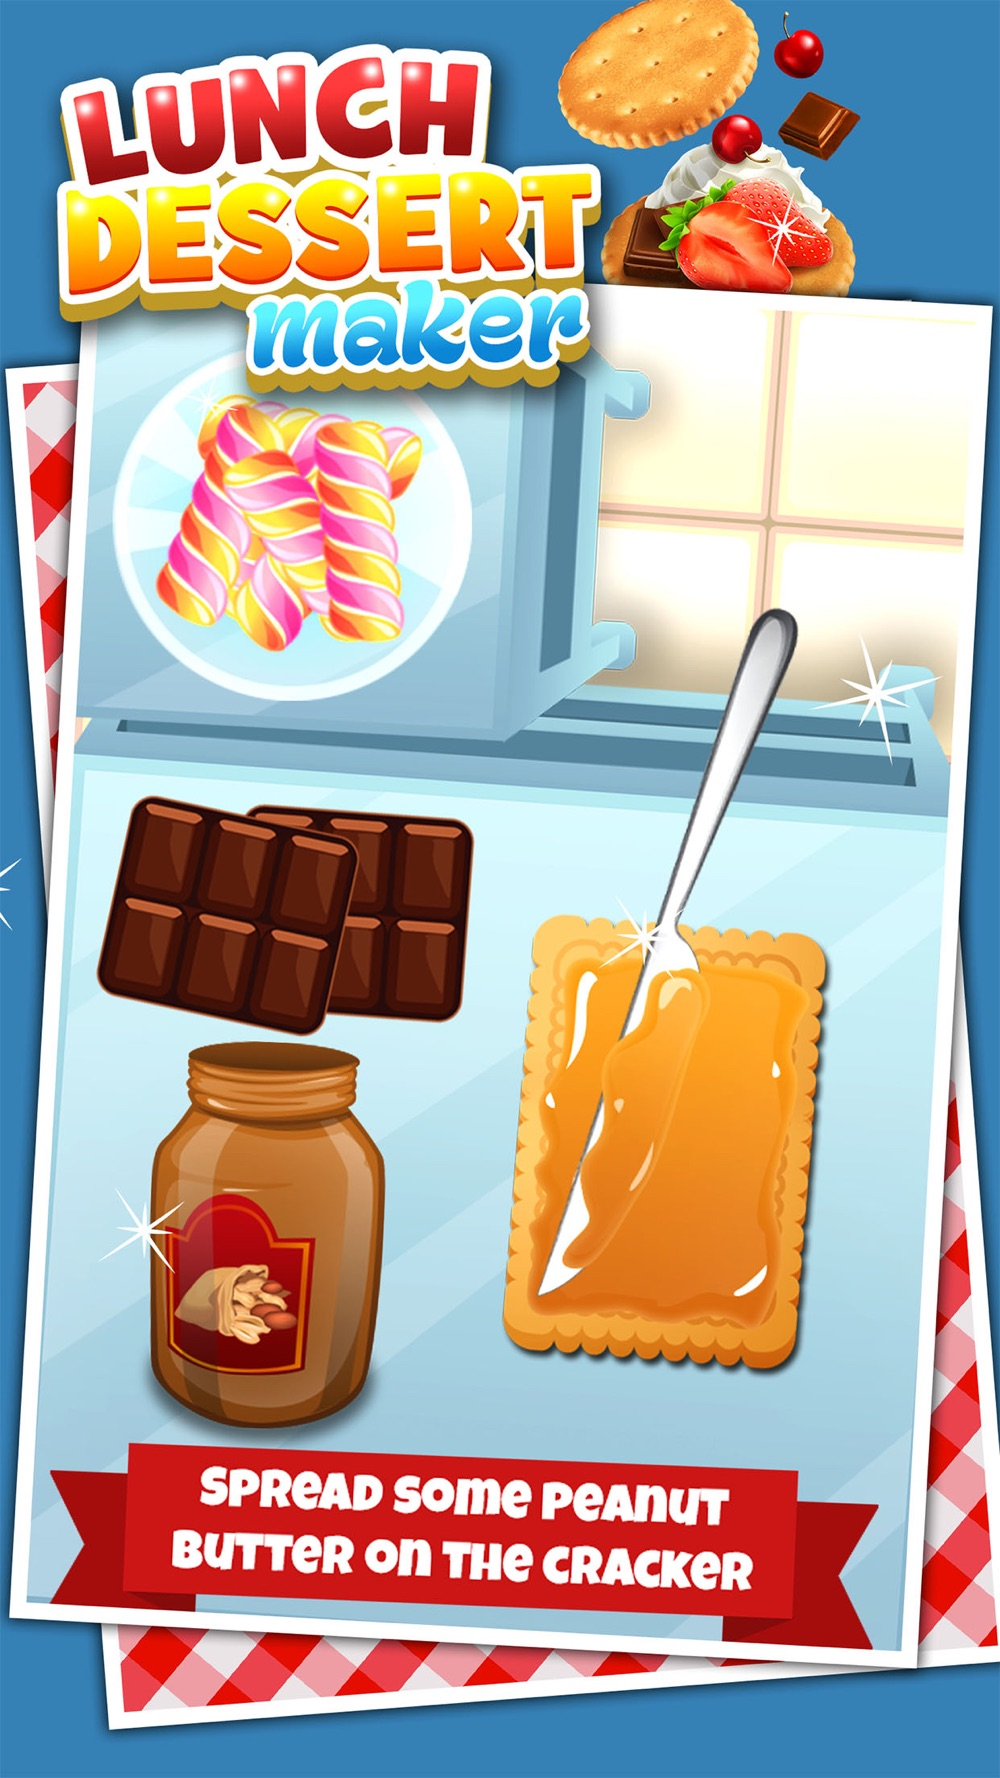 Lunch Dessert Food Maker Games for Kids Free Cheat Codes